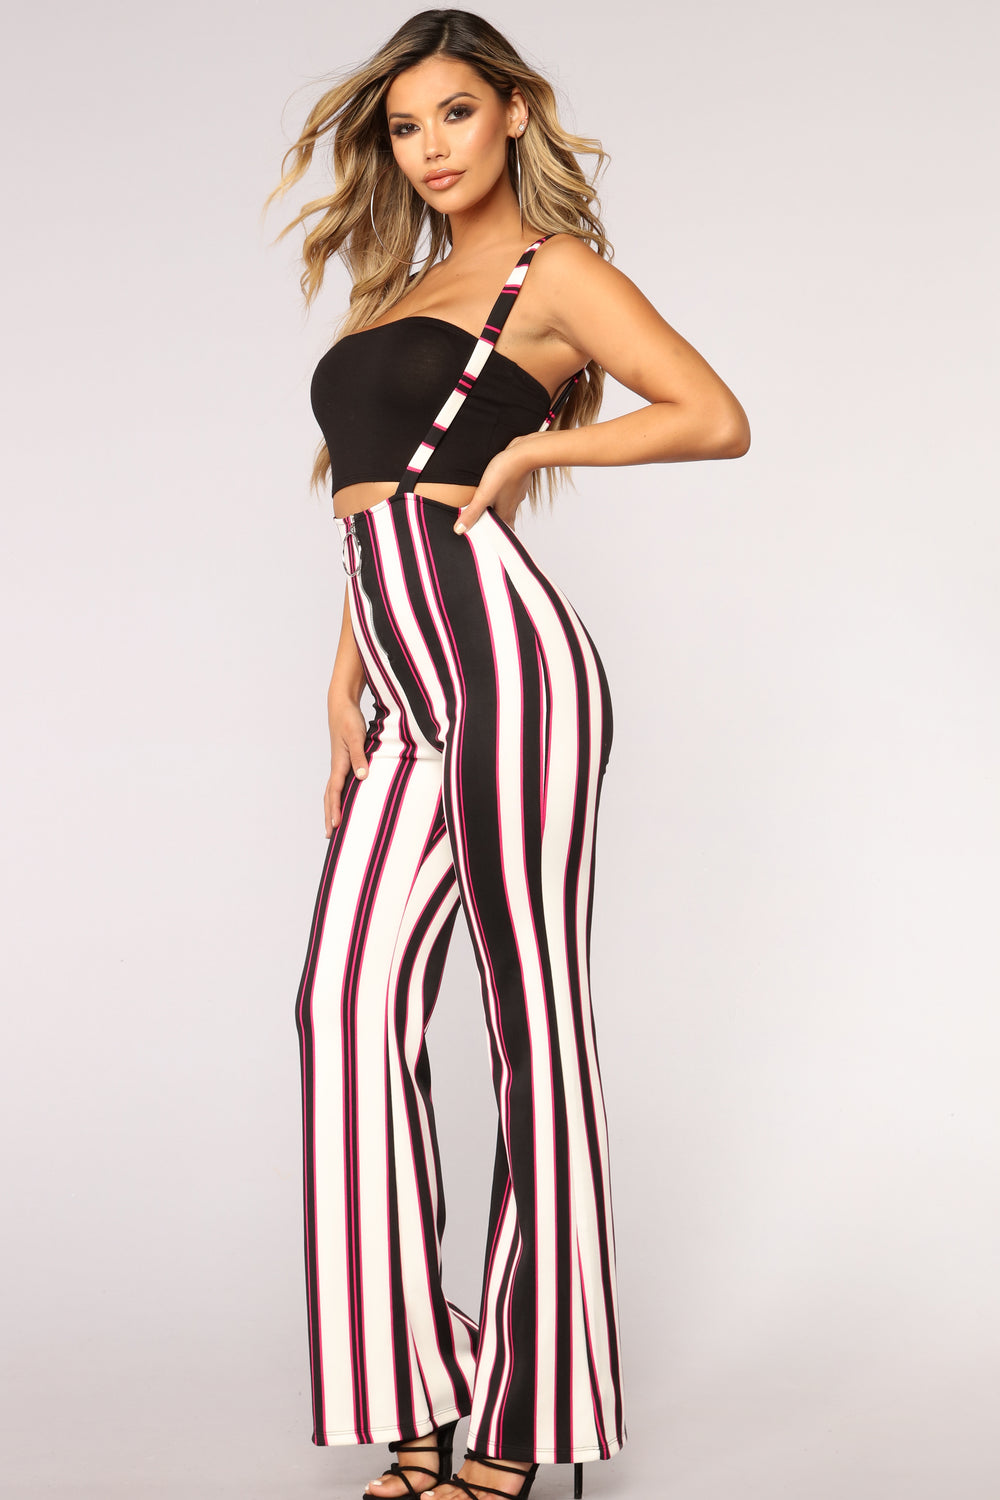 Jessa Overall Pants - Multi Color